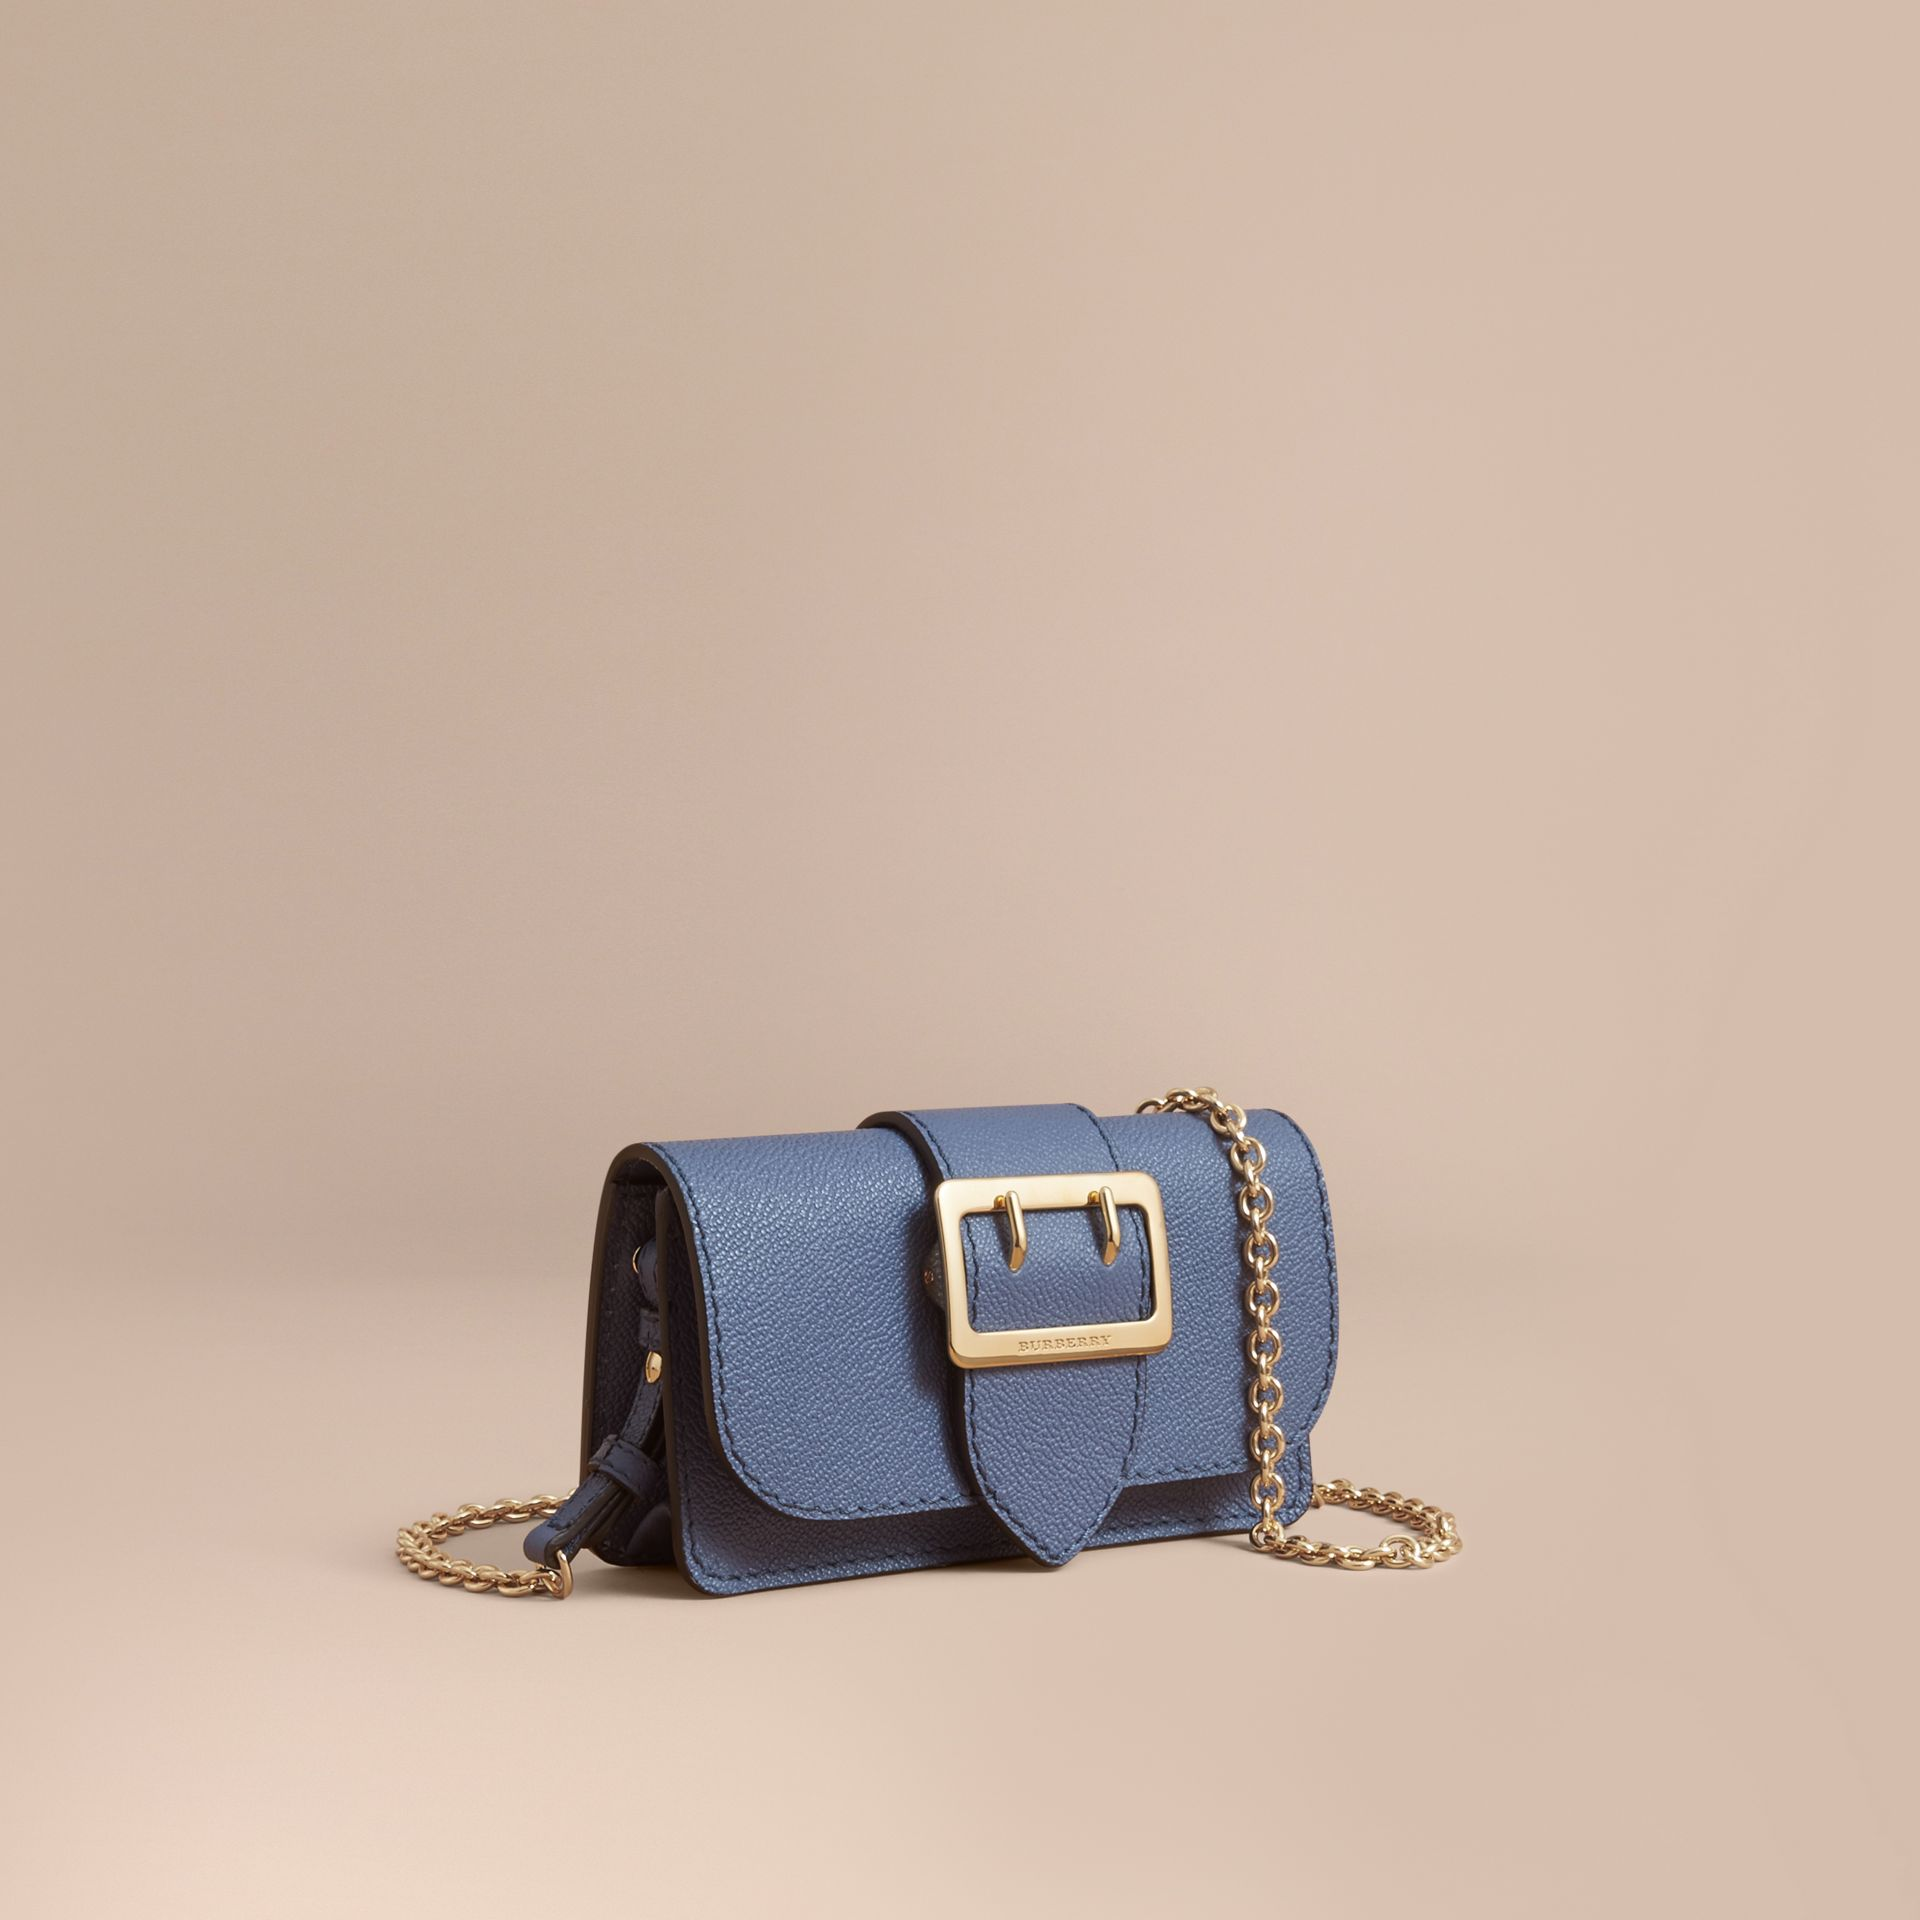 The Mini Buckle Bag in Grainy Leather in Steel Blue - Women | Burberry Hong Kong - gallery image 1